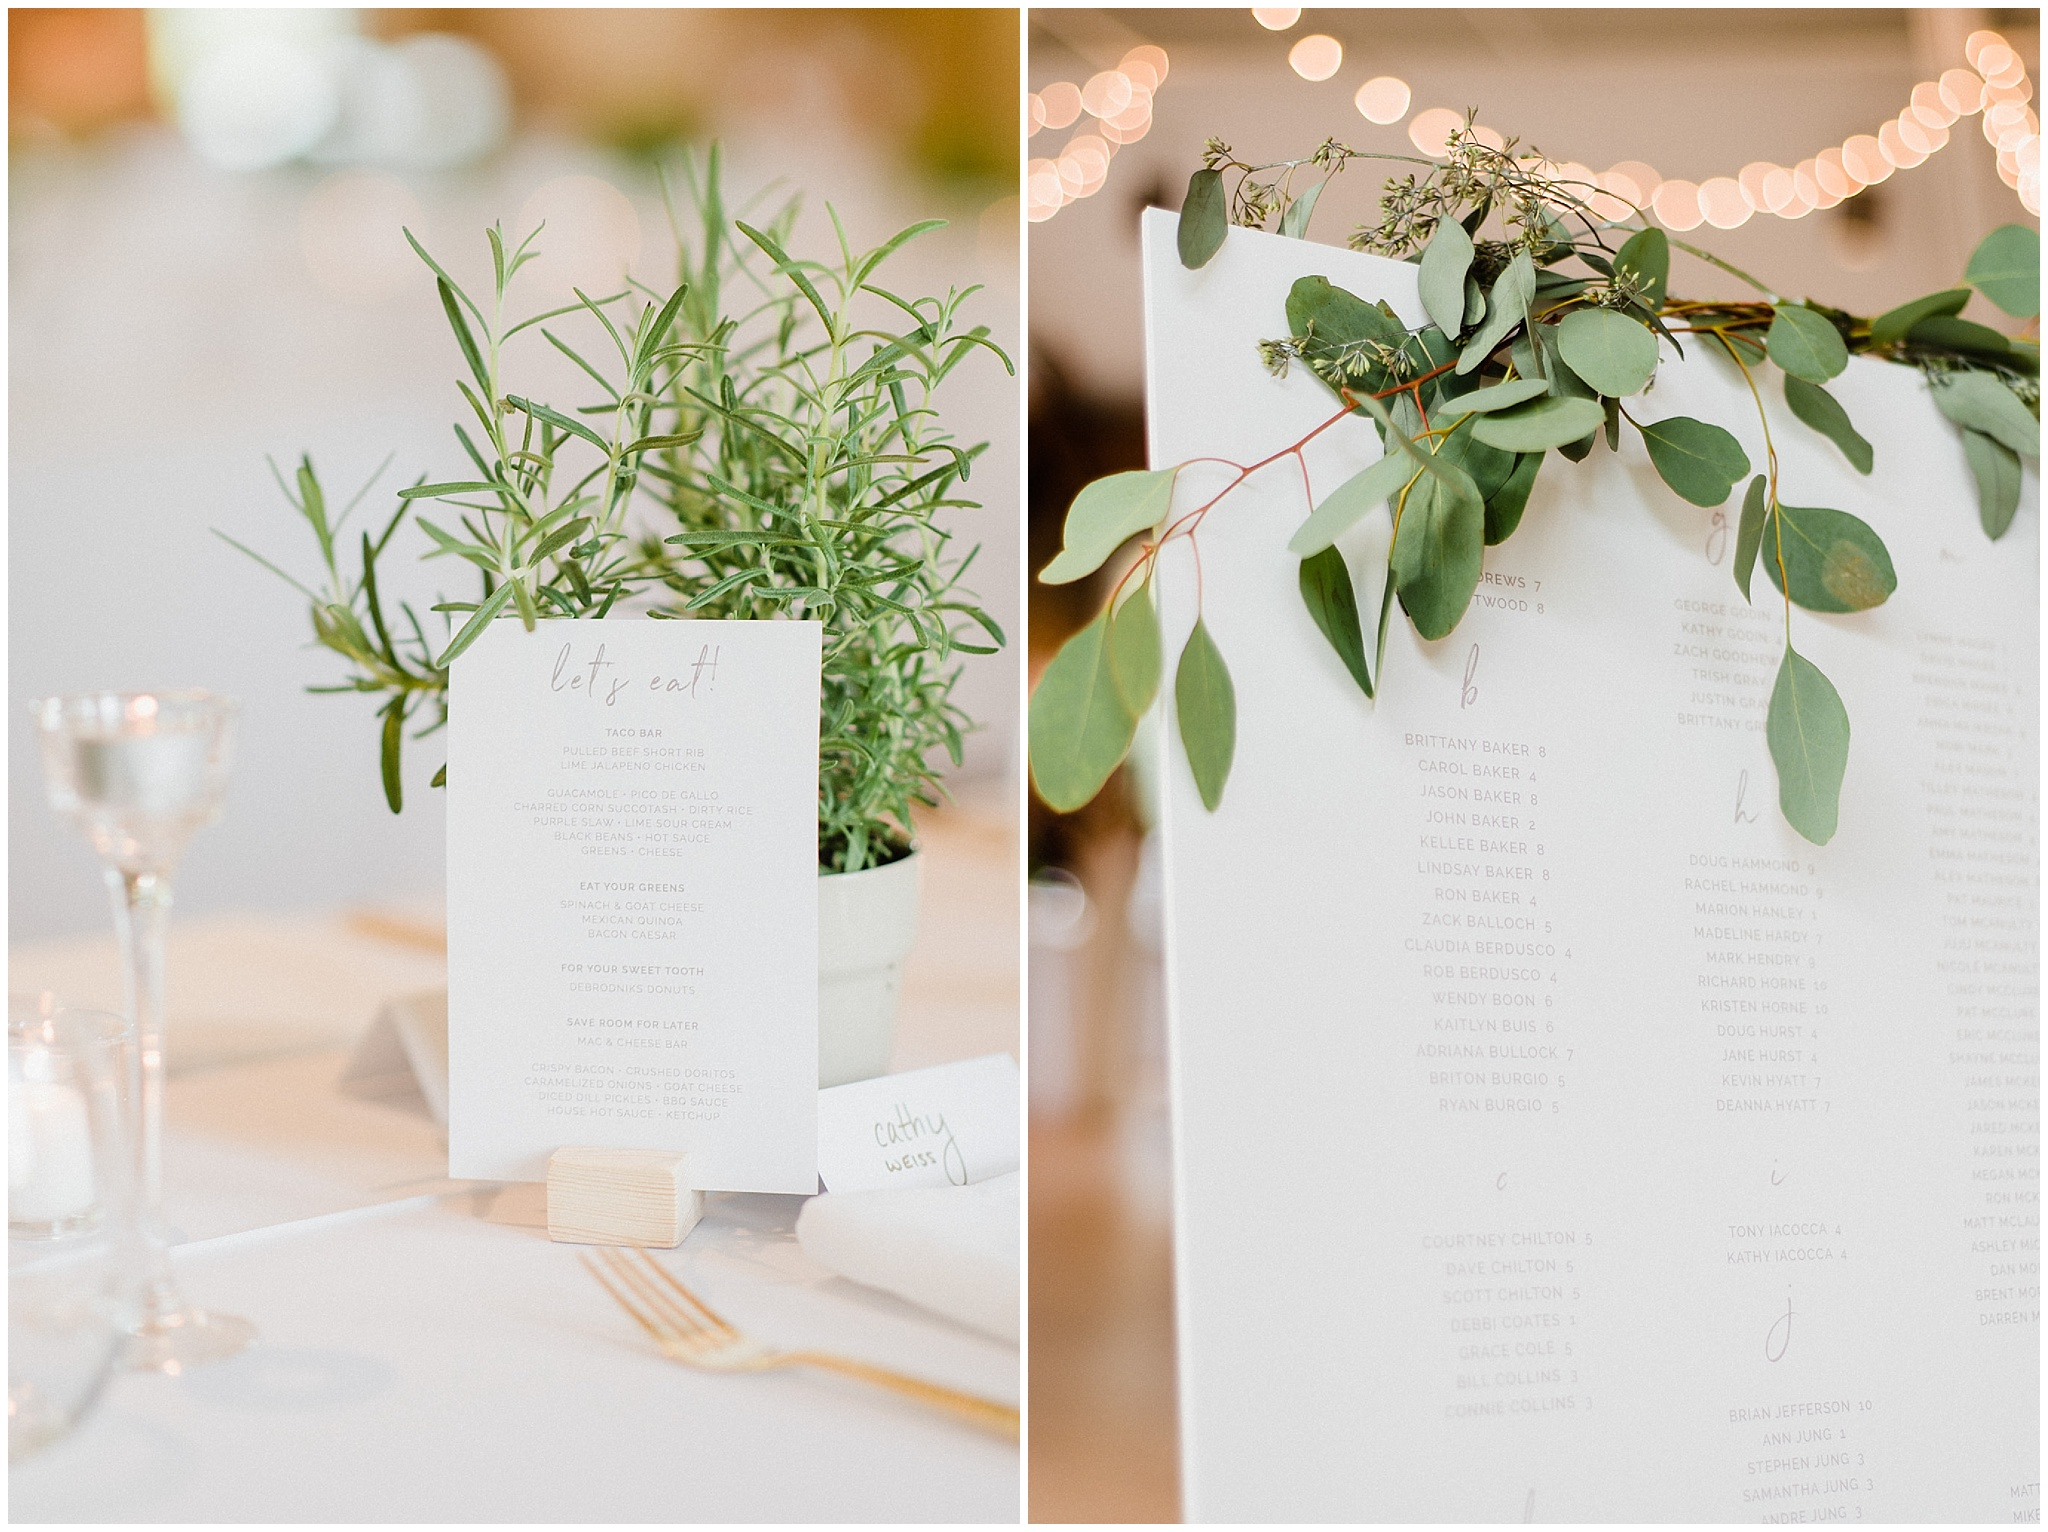 Victoria Park Pavilion wedding by Jenn Kavanagh Photography